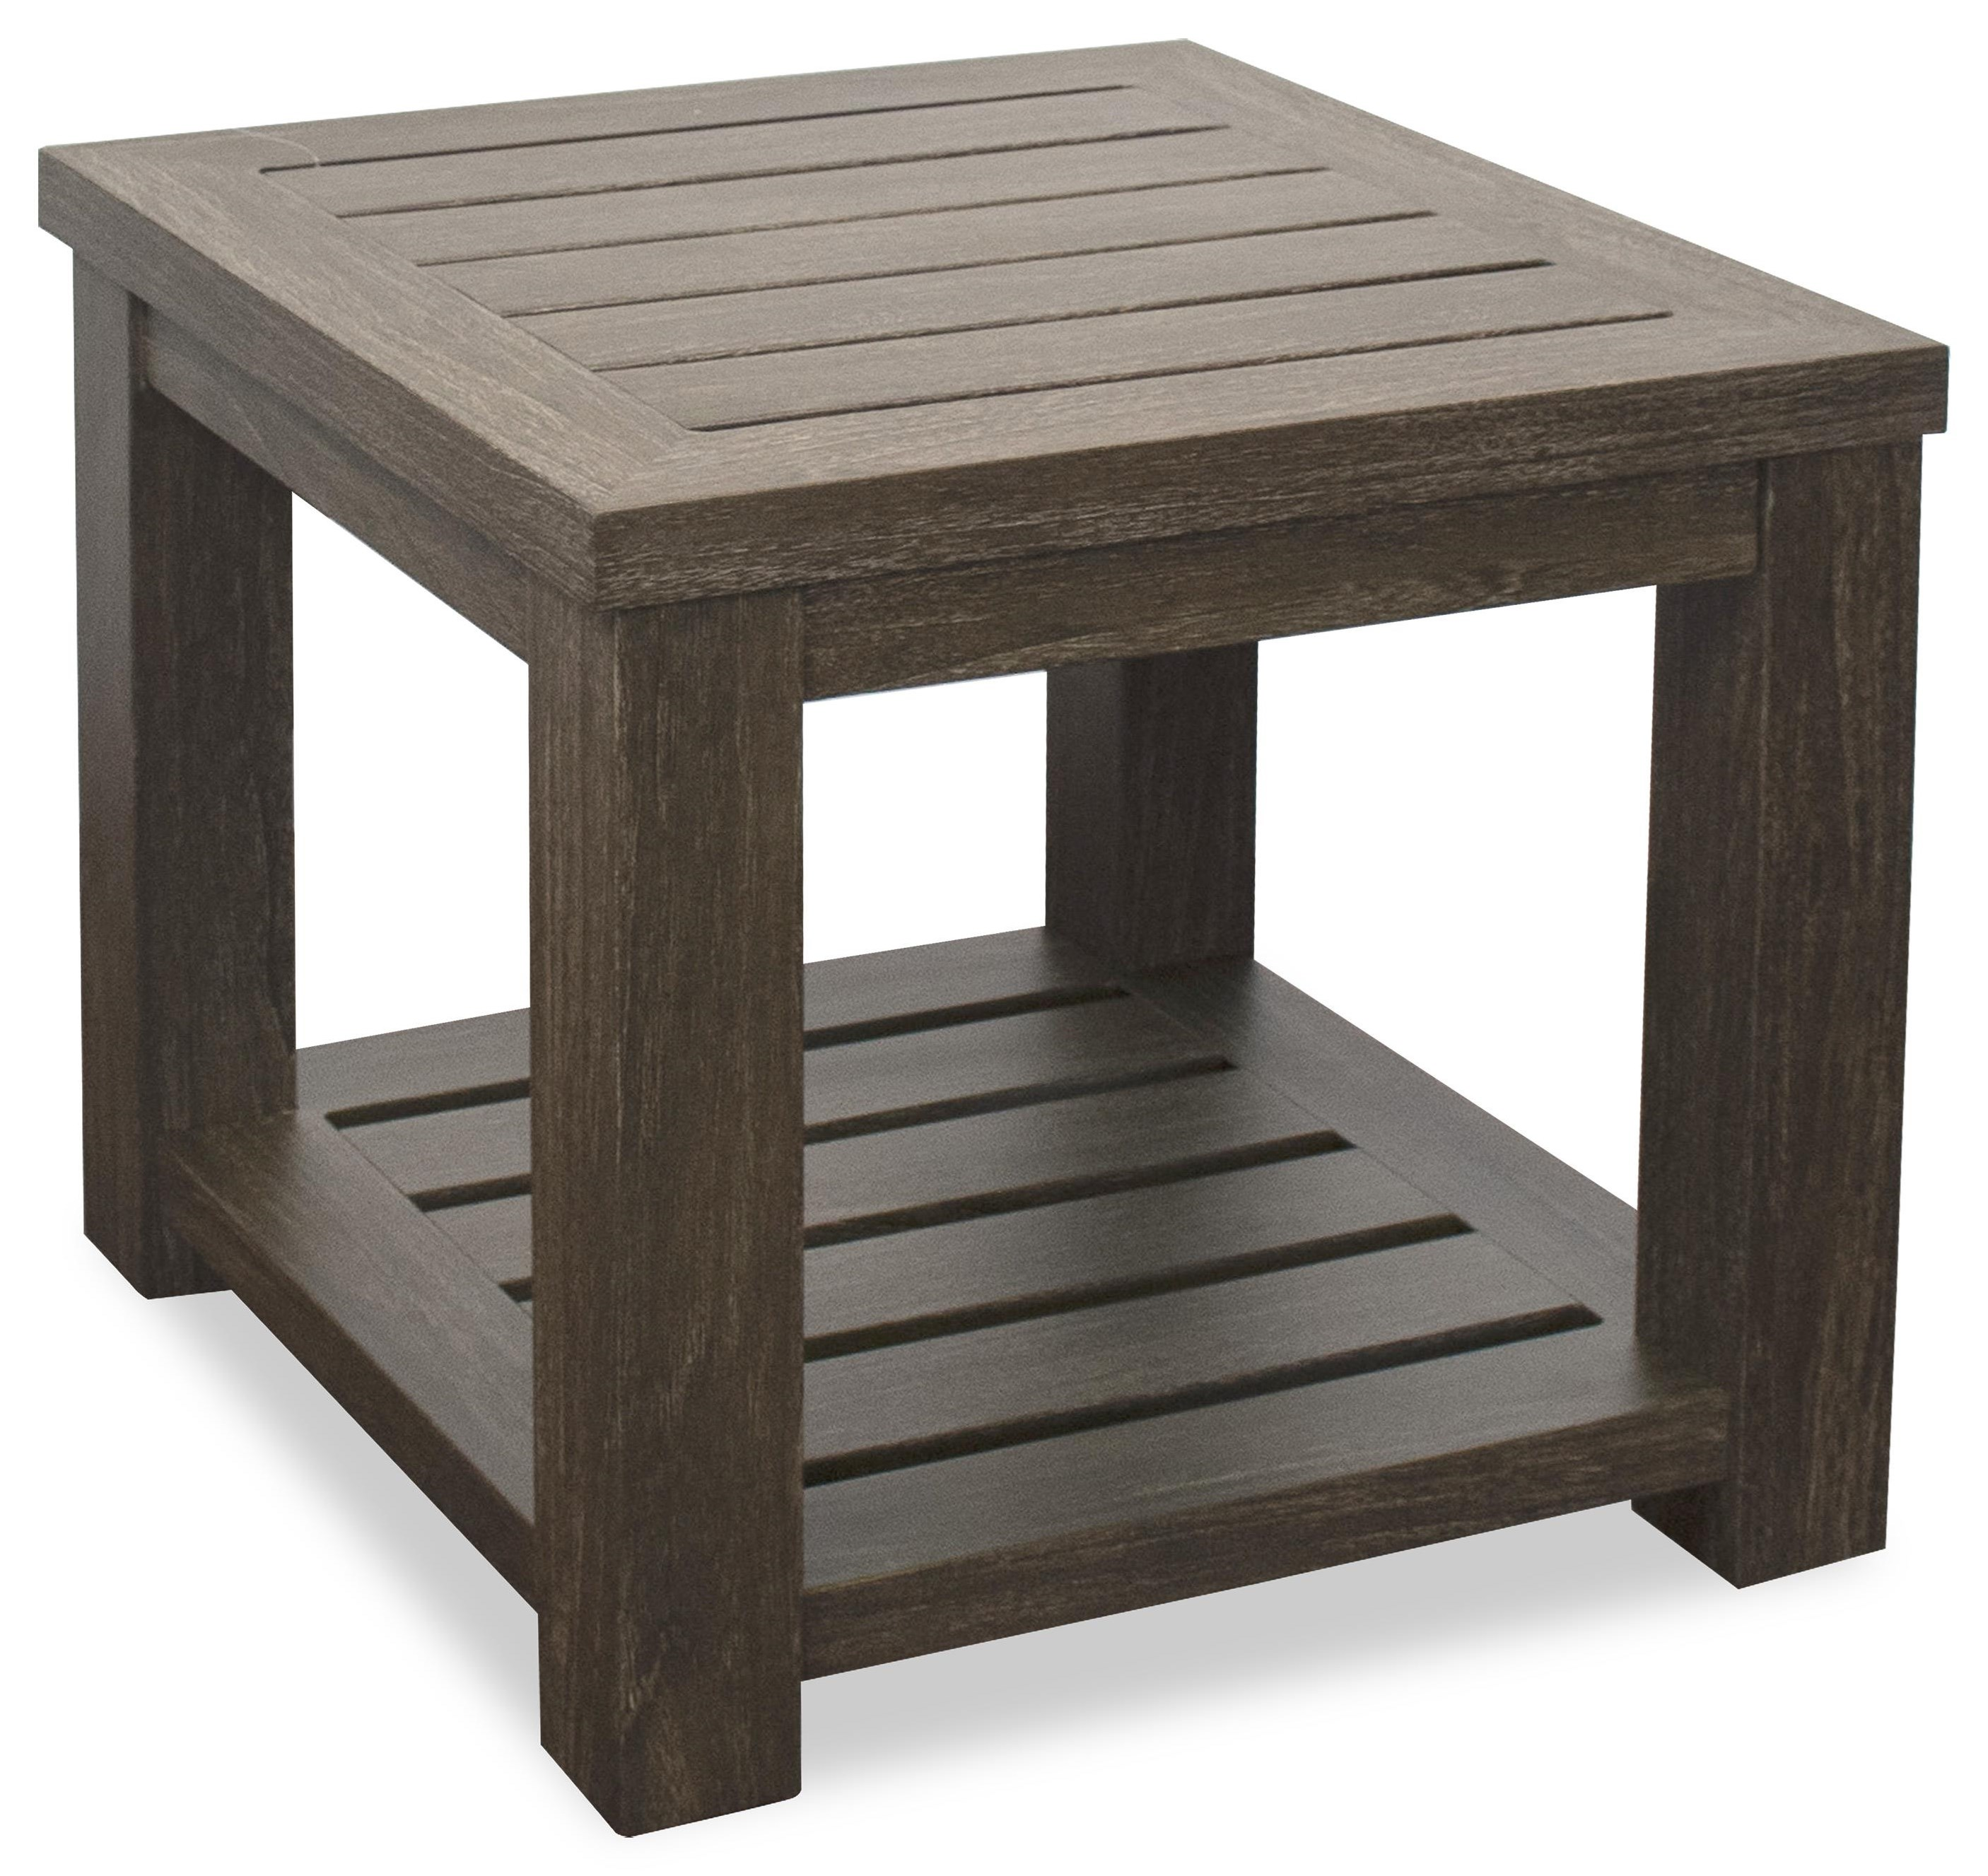 Patio Renaissance Seattle End Table by Patio Renaissance at Johnny Janosik